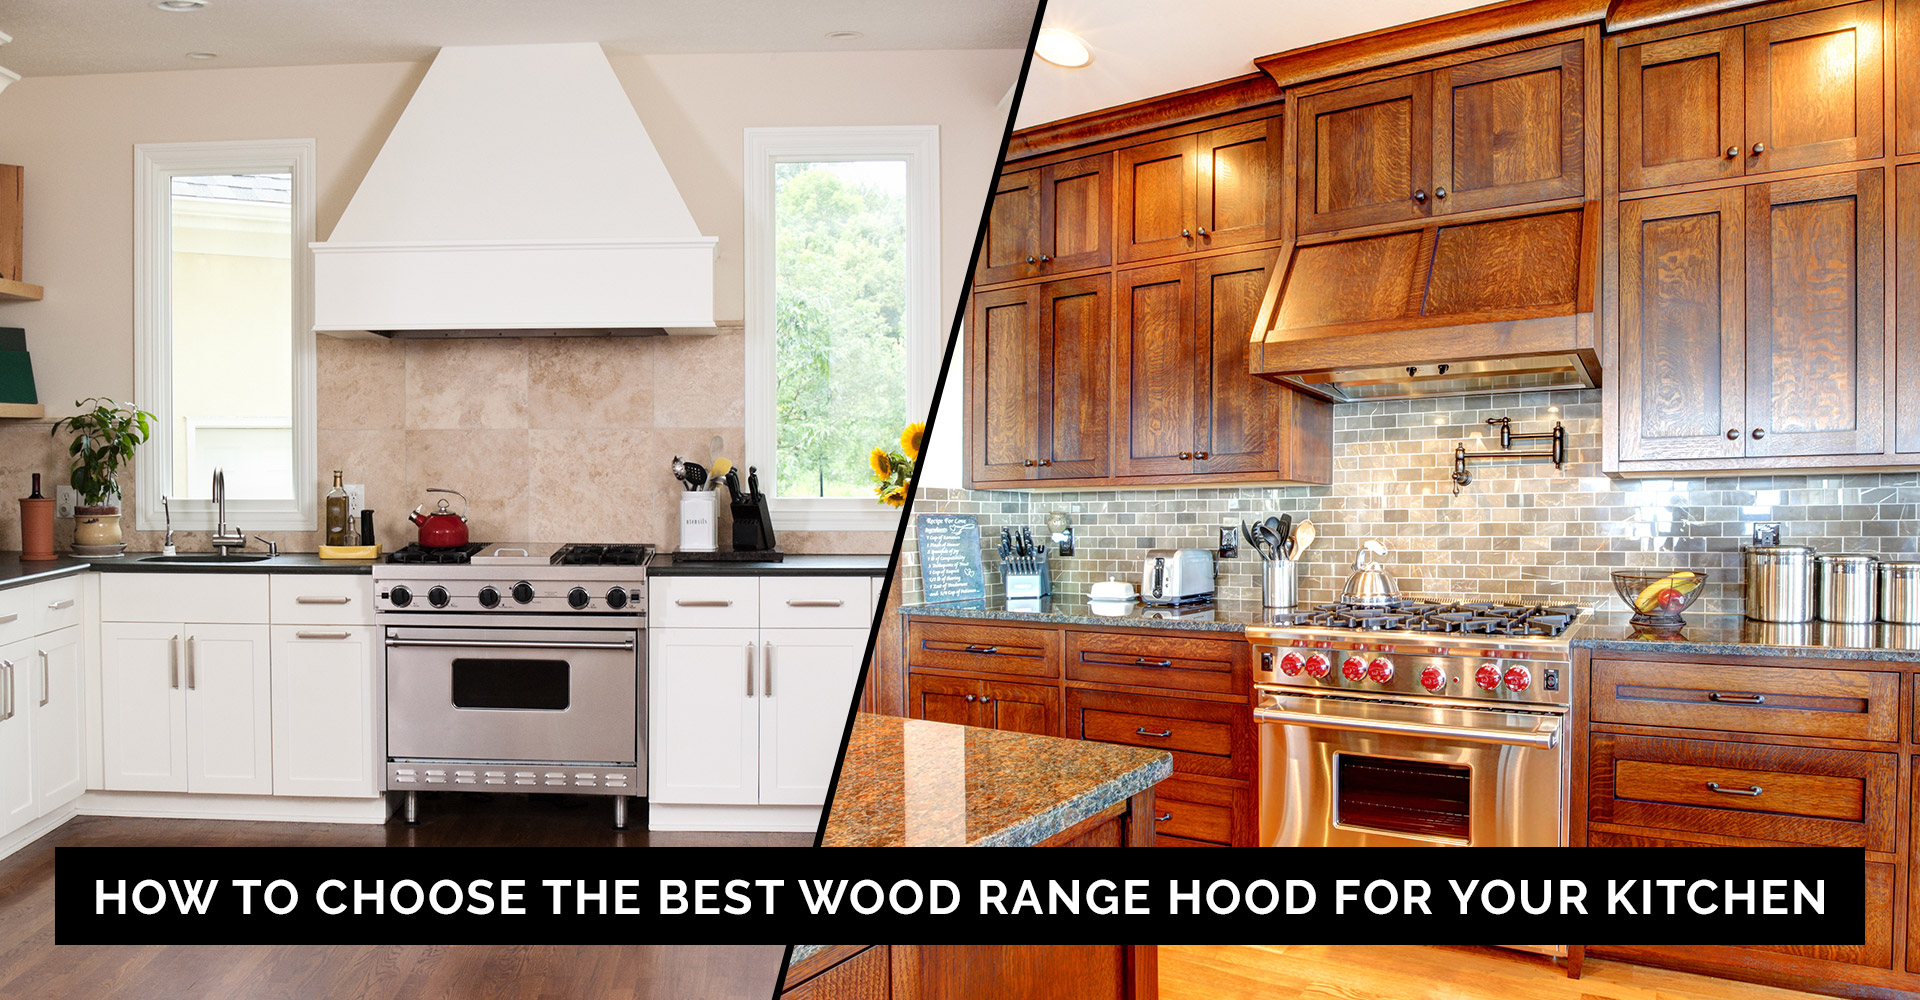 How to Choose the Best Wood Range Hood for Your Kitchen